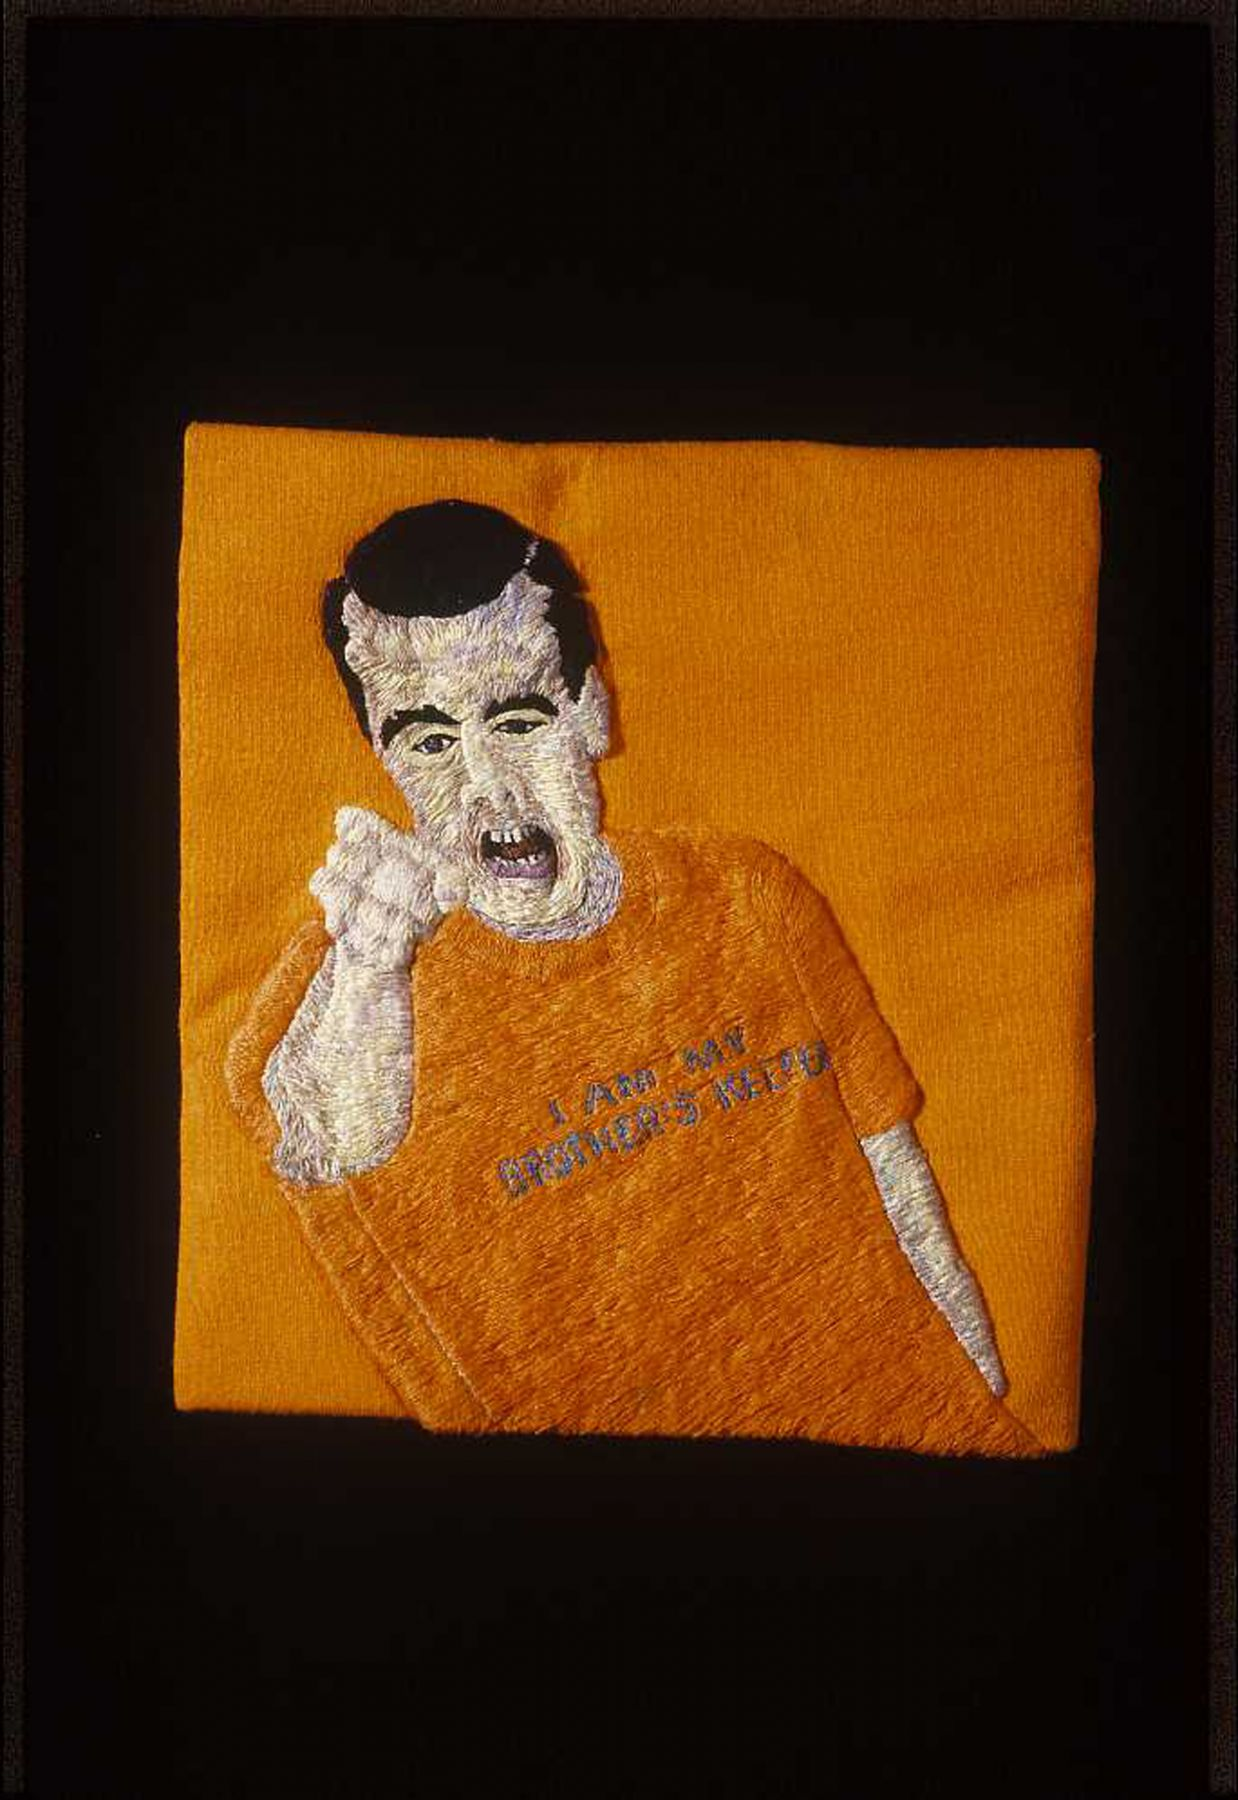 Darrel Morris, My Brother's Keeper, 2006, embroidery and applique, 8 1/2 x 7 1/2 inches